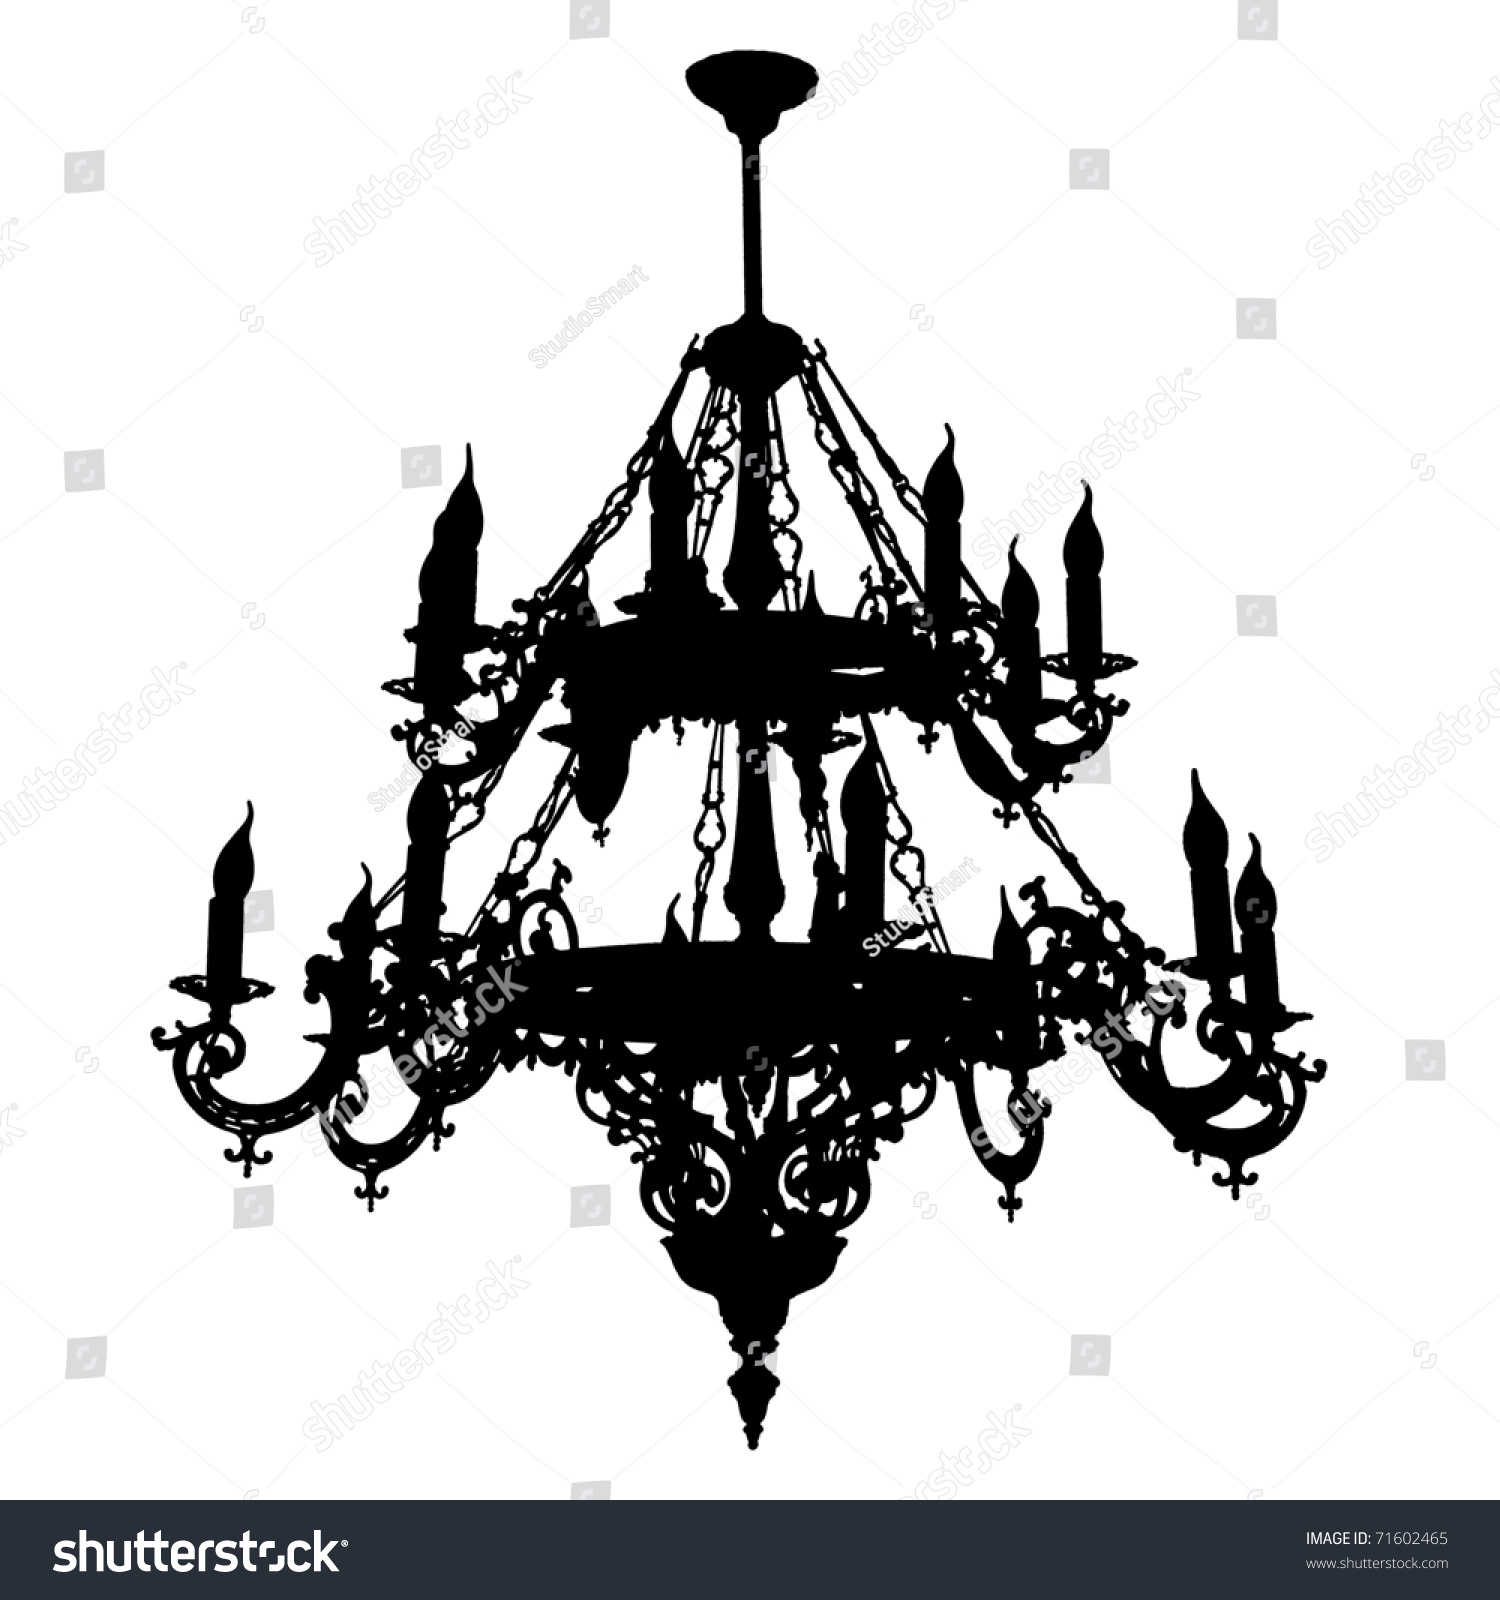 Chandelier Silhouette Stock Photo 71602465 - Shutterstock